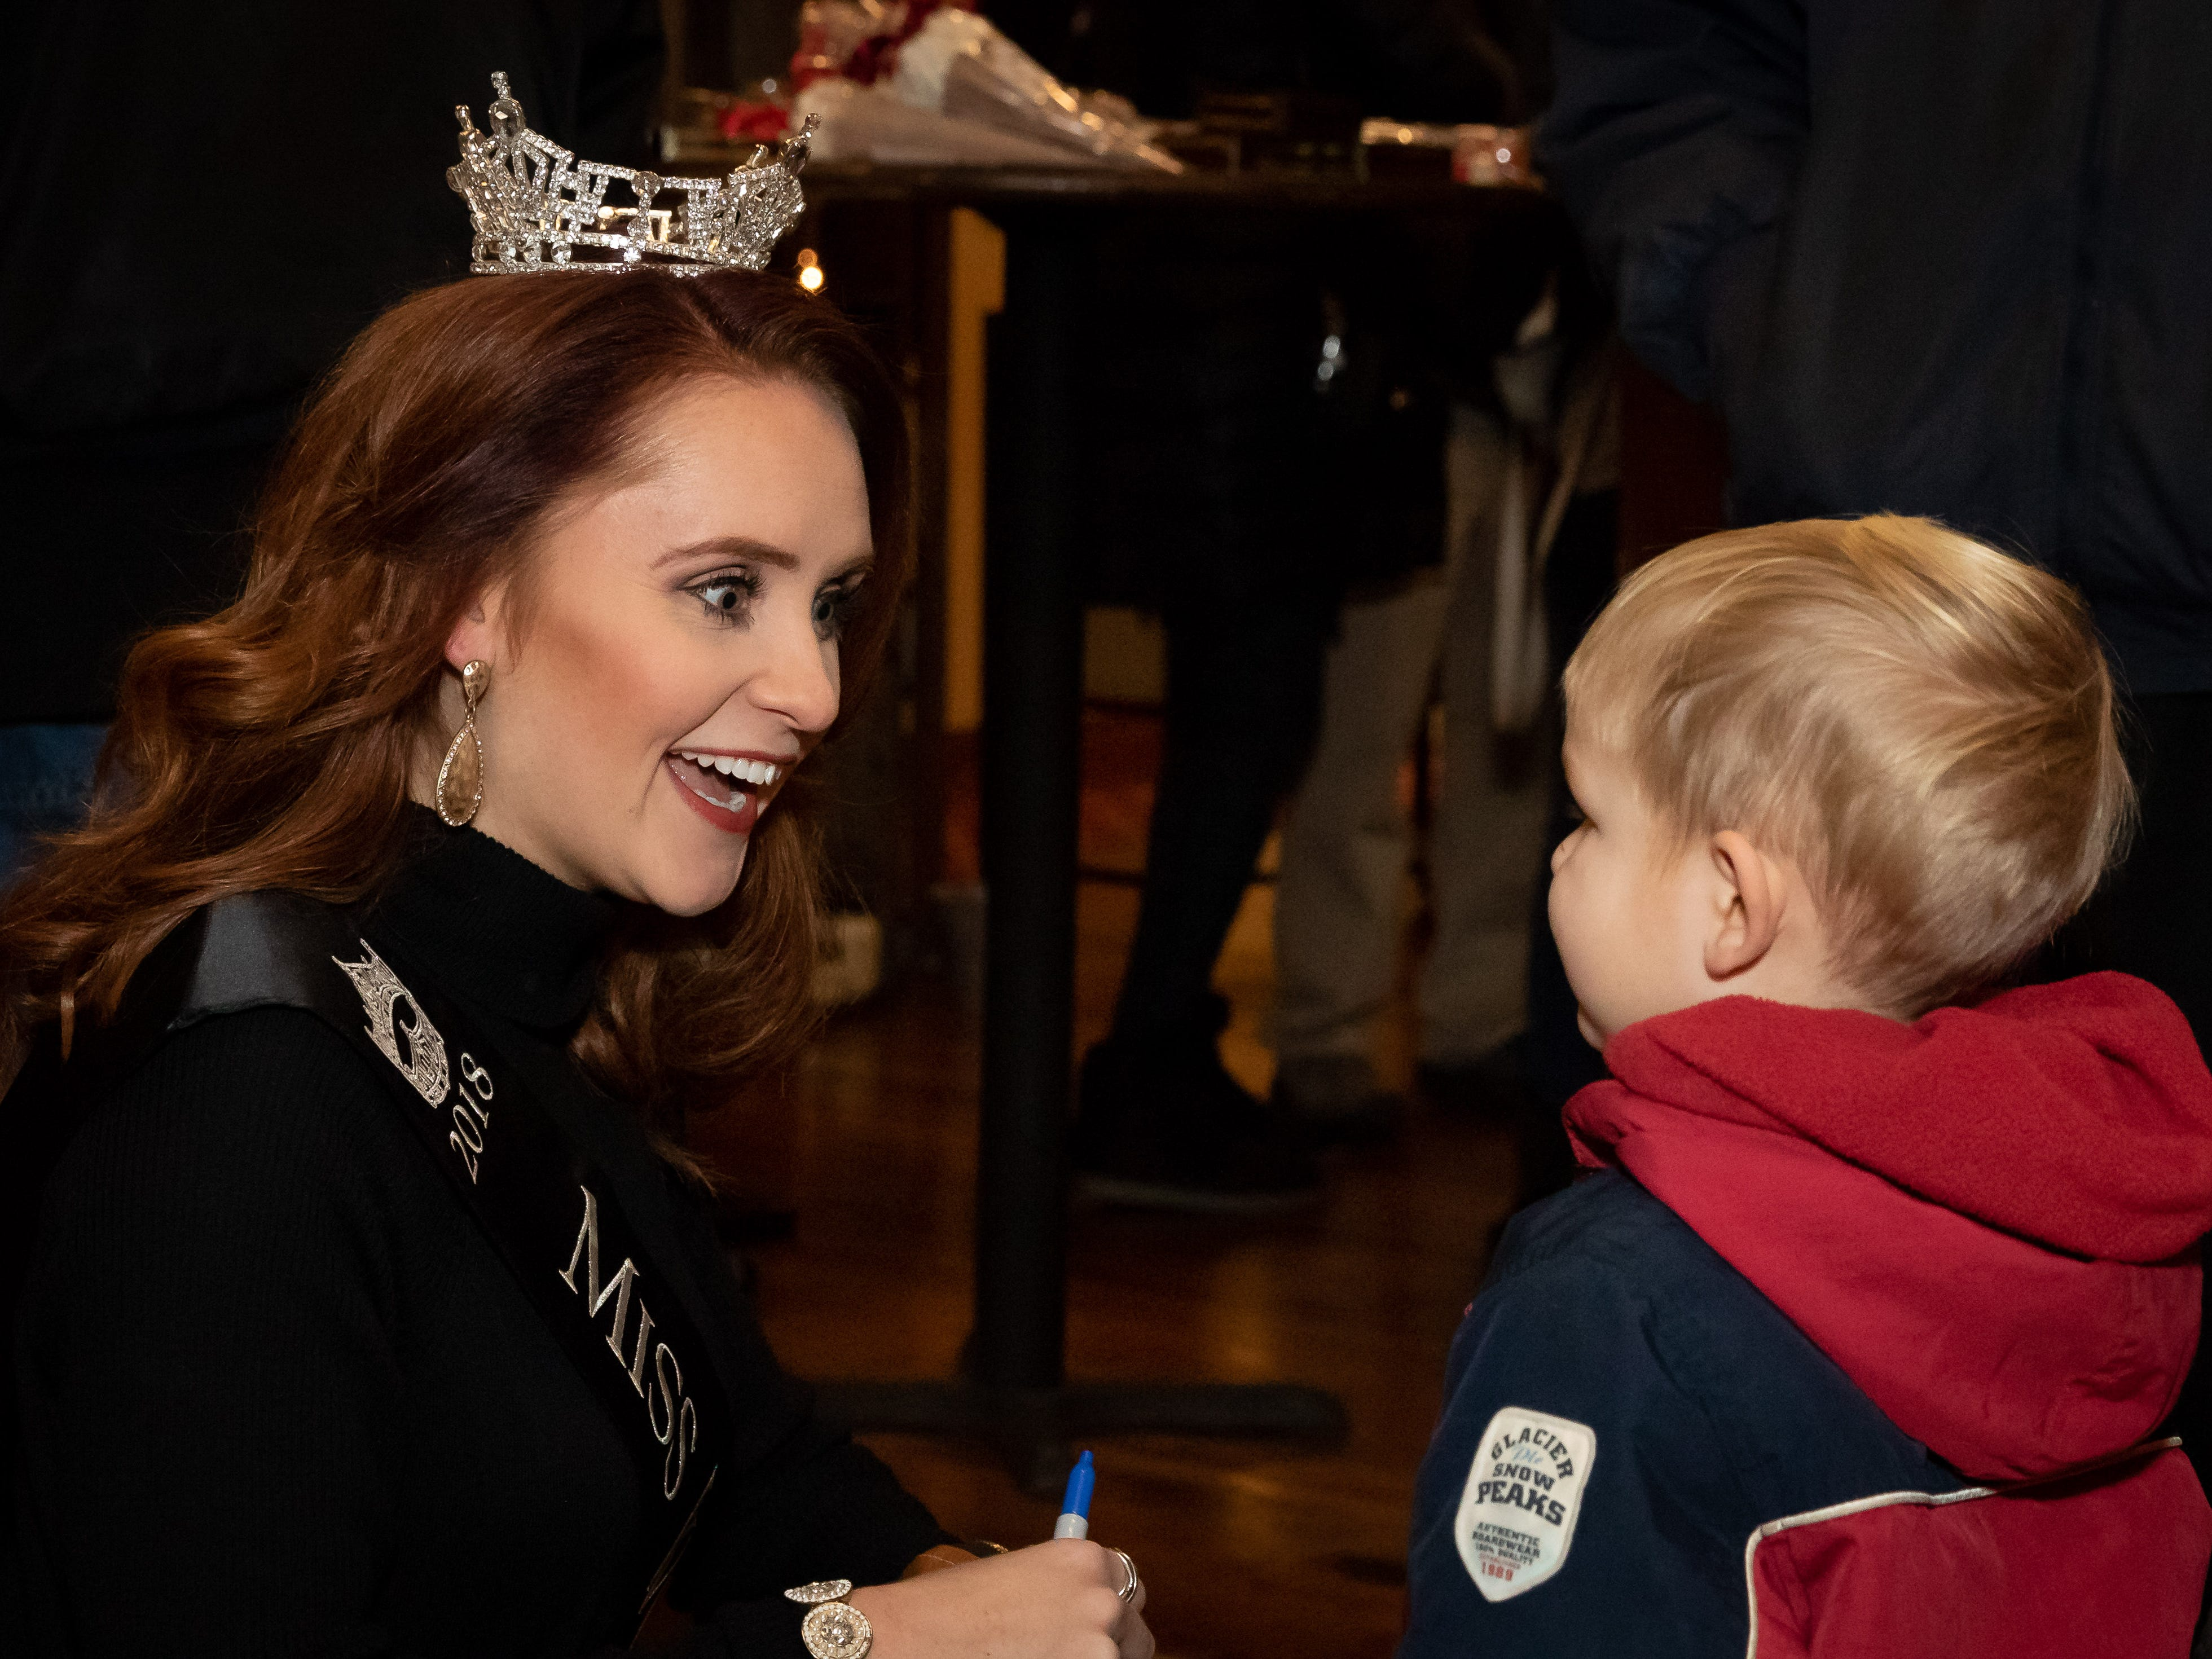 Miss Wisconsin 2018 Tianna Vanderhei talks with a young boy following the Rekindle the Season holiday parade on Wednesday, Nov. 21, 2018, in downtown Wisconsin Rapids.